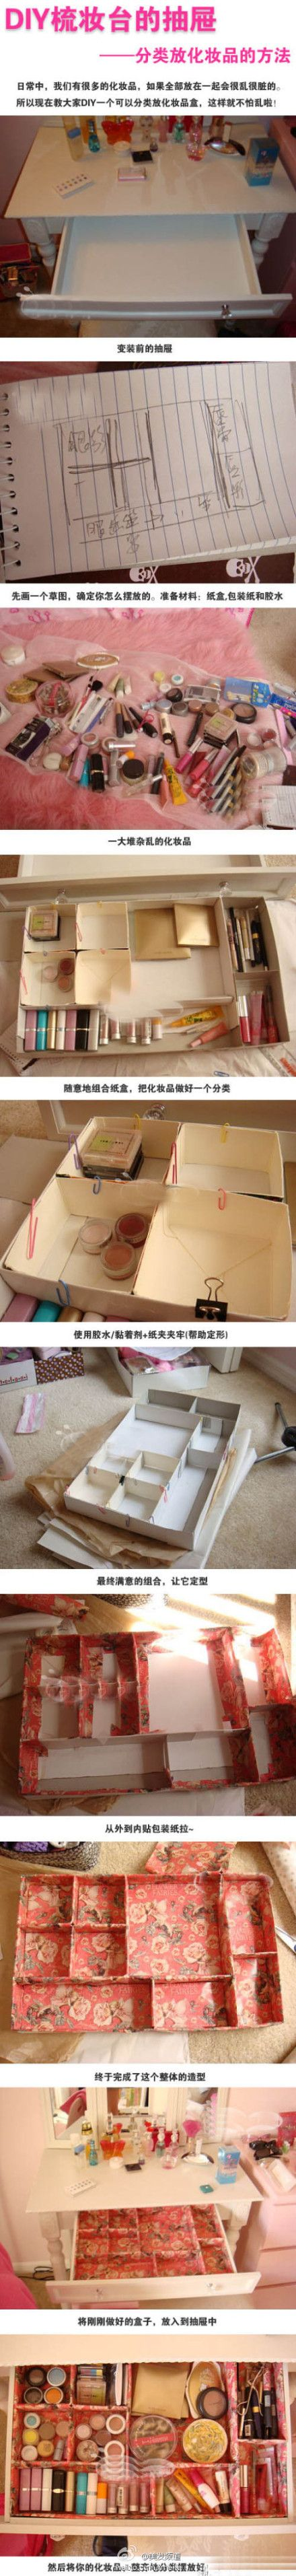 Makeup Organizer-it's in a different language, but i get the gist of it. Good idea! Just grab little gift boxes and cut them down and measure your drawer and organize all that makeup! (;